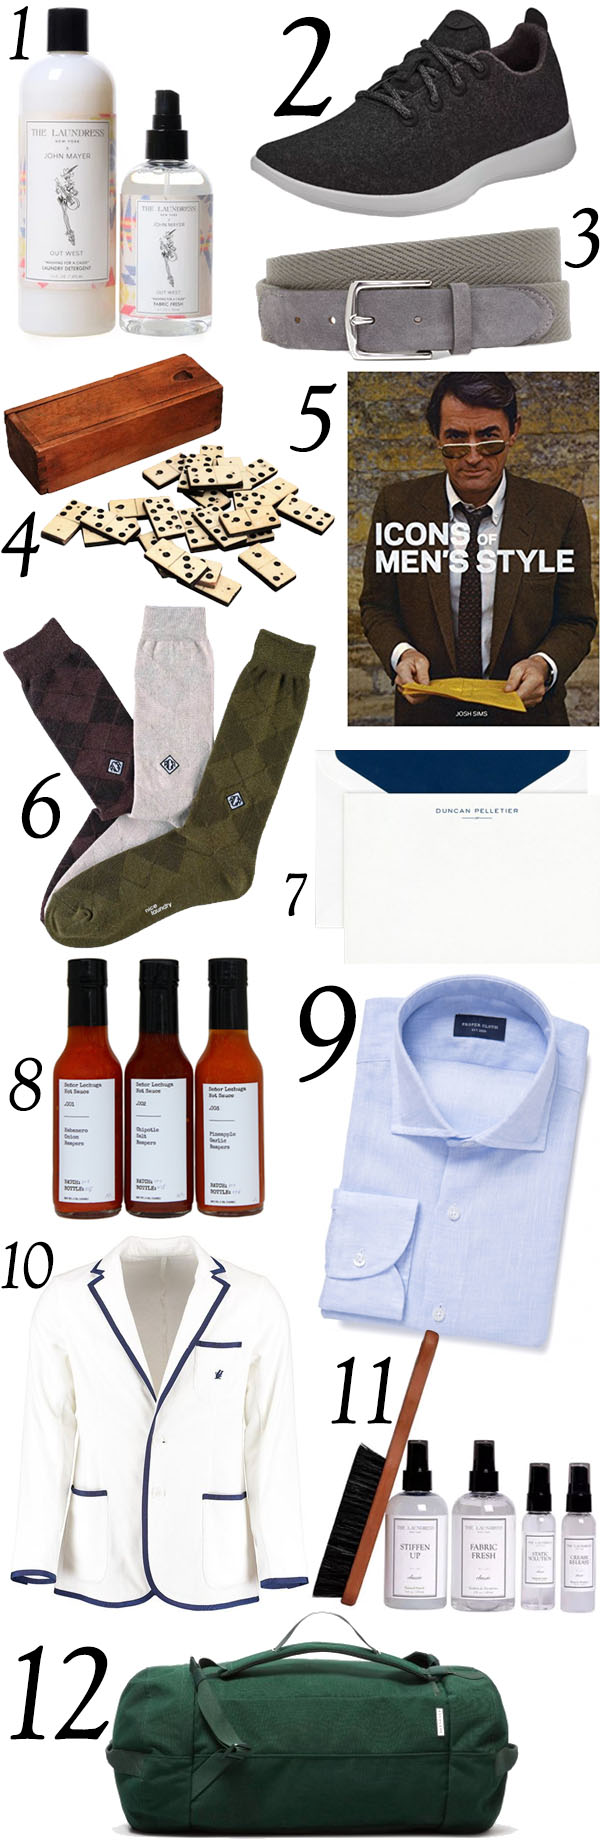 CMSPage_Father's Day Gift Guide 2018_ONE_SIZE_IMAGE_01